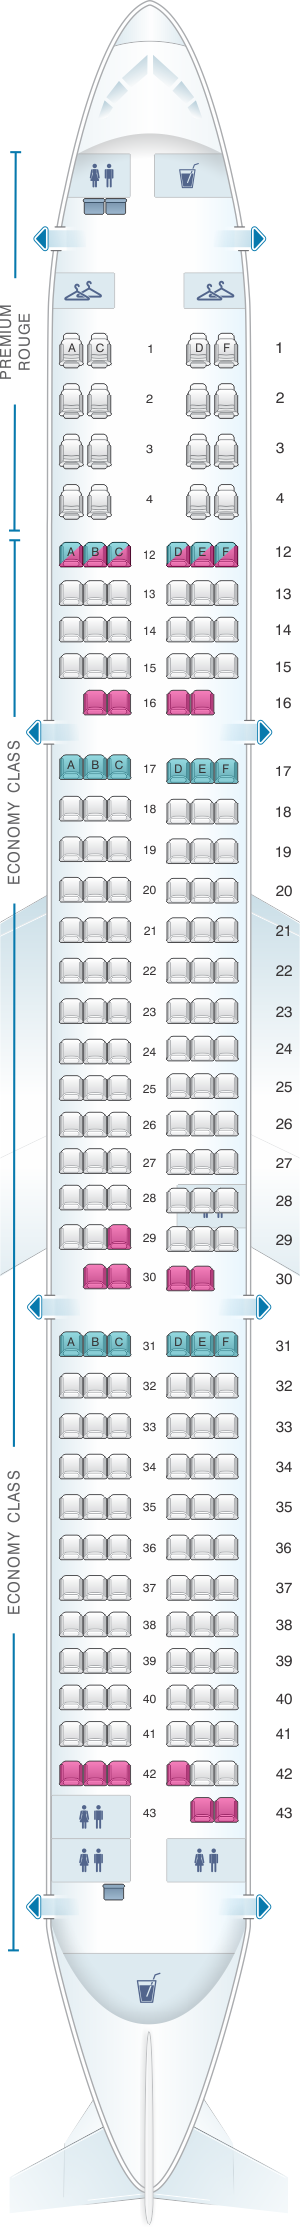 Seat map for Air Canada Airbus A321 200 Rouge